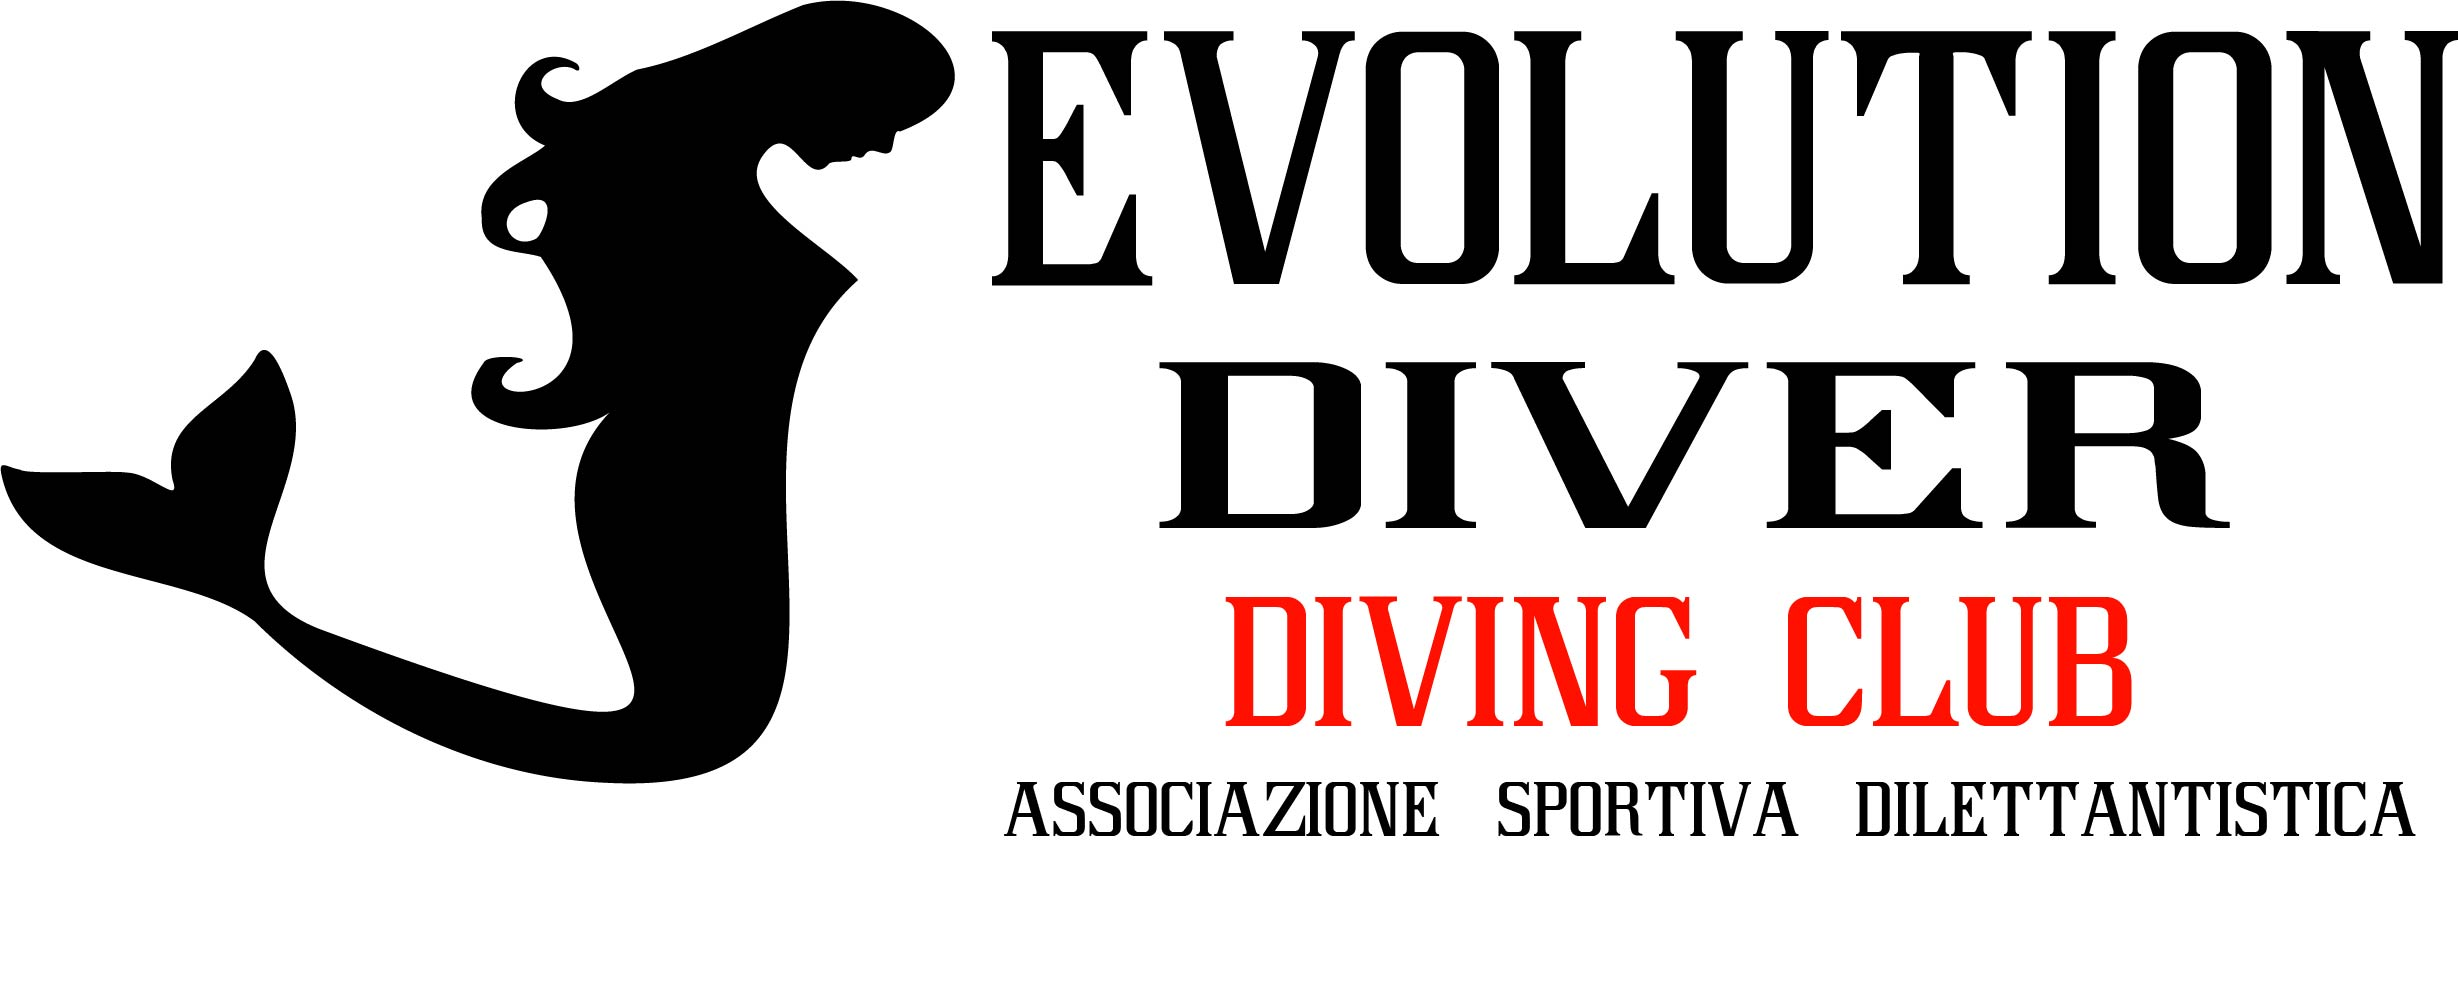 Evolution Diver Diving Club